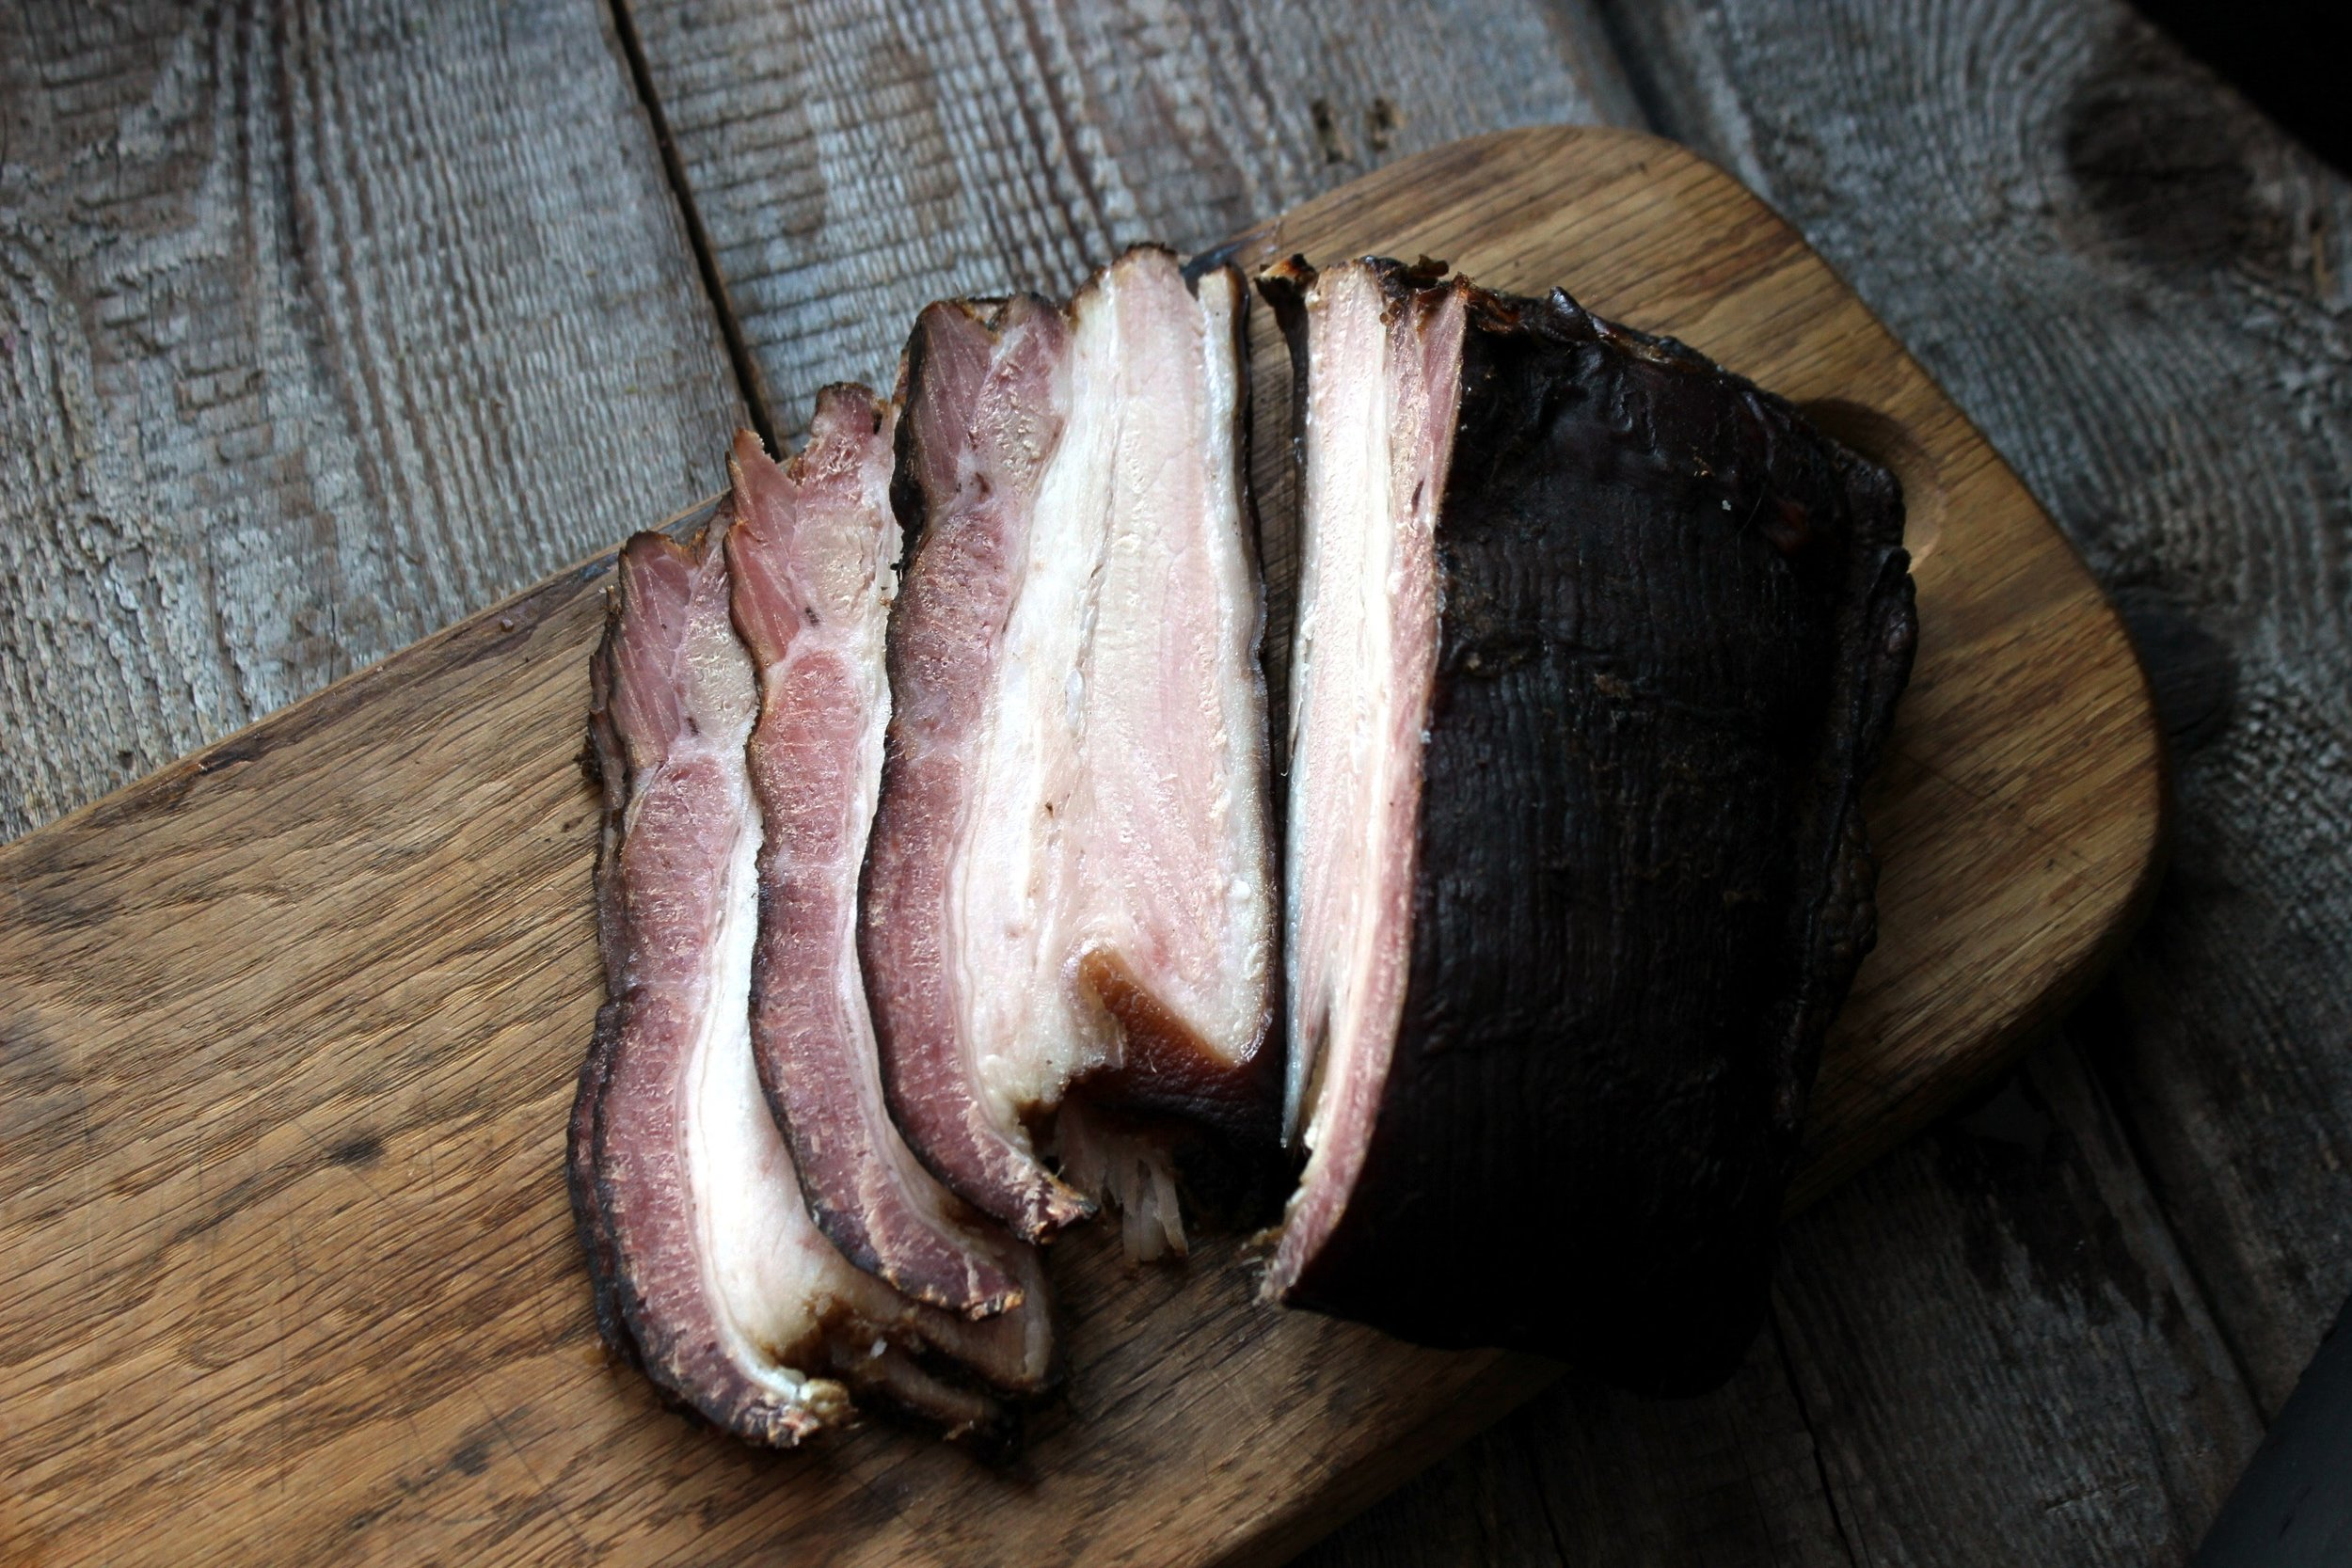 Pork cured and coated with a mixture of carefully blended spices, juniper berries and molasses which permeate the ham.